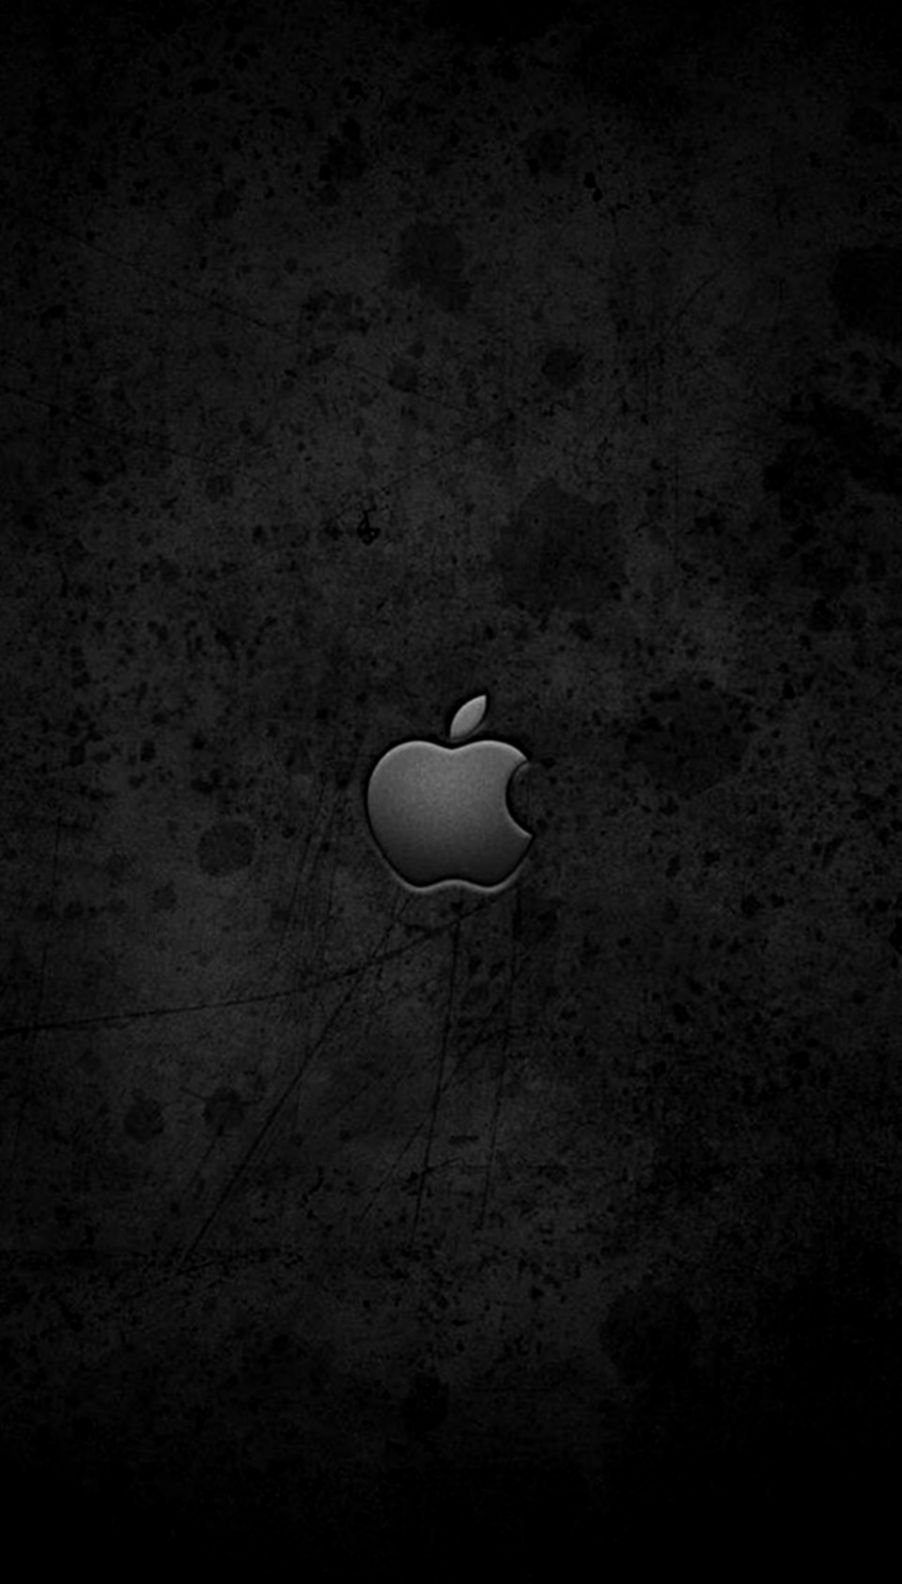 40 Gambar Apple Black Wallpaper Hd Iphone Terbaru 2020 Di